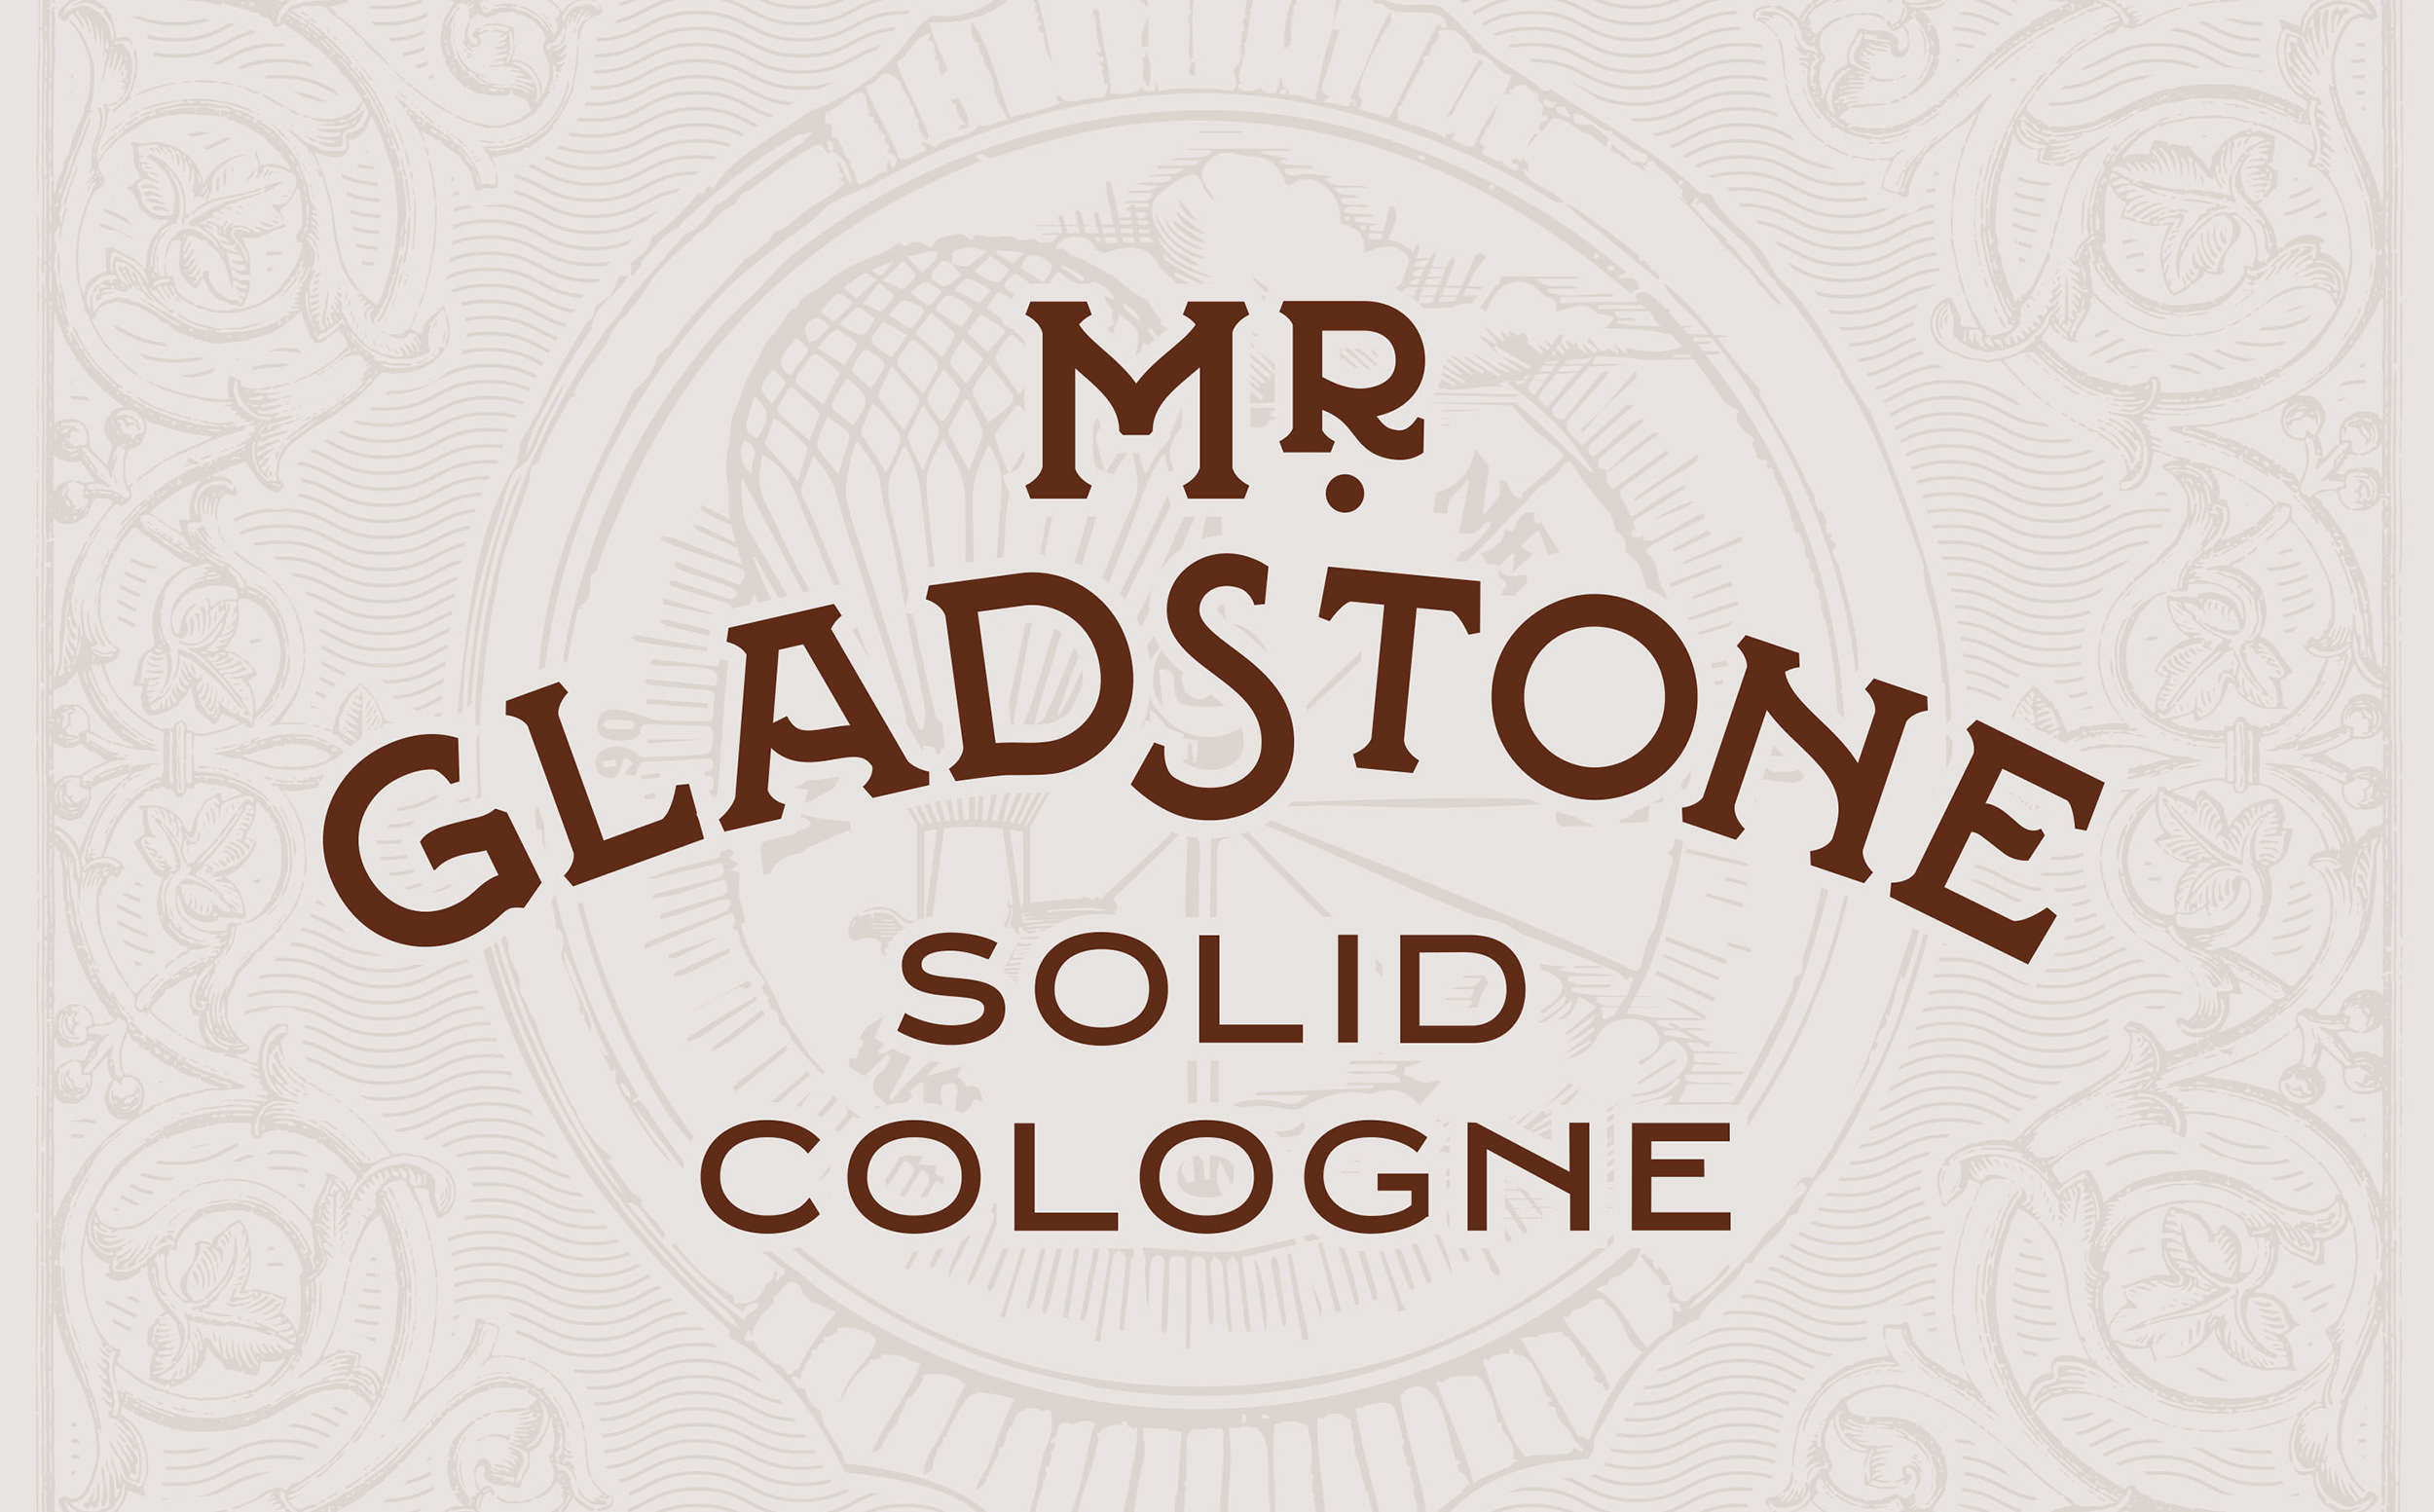 Chad Roberts Design Ltd. Mr. Gladstone Brand Identity Design